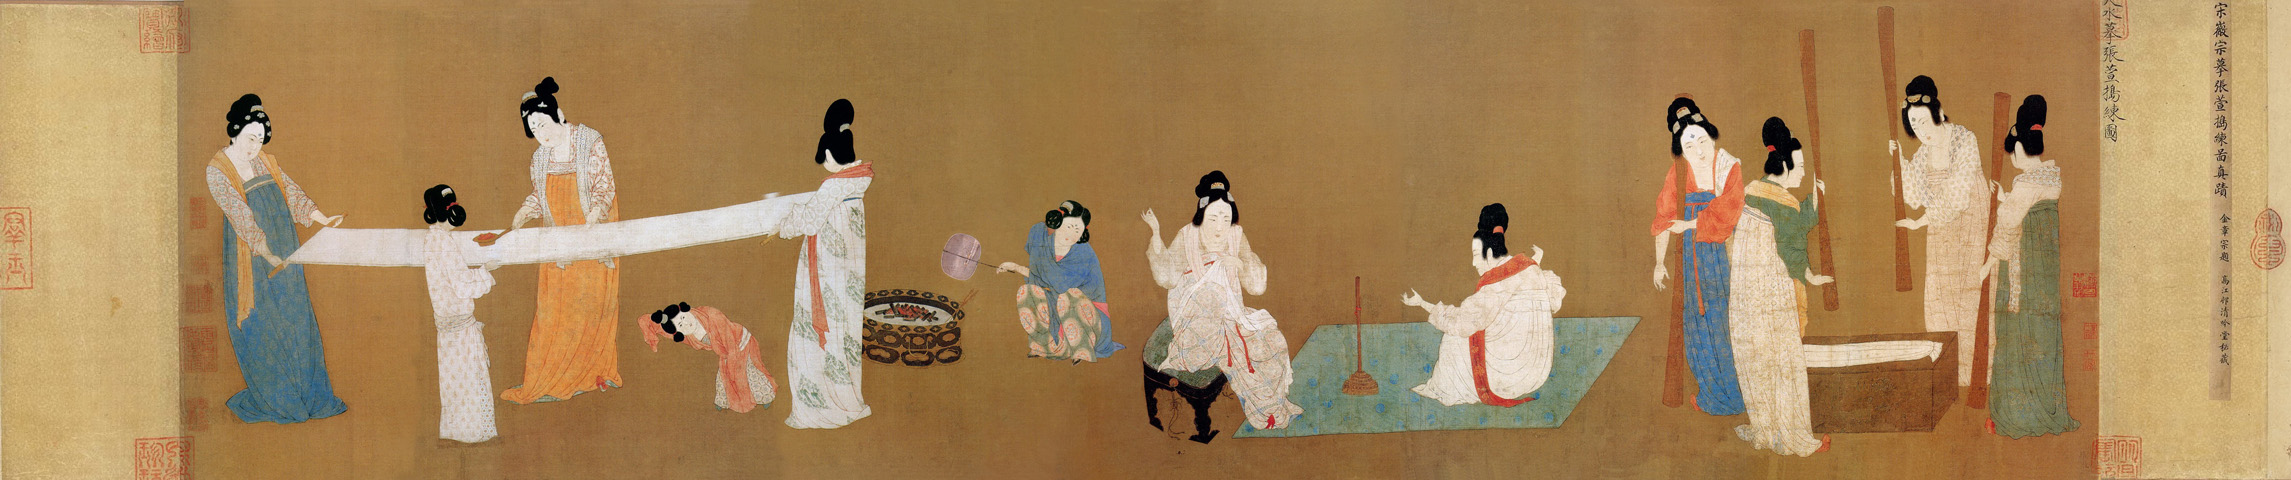 court-ladies-preparing-newly-woven-silk